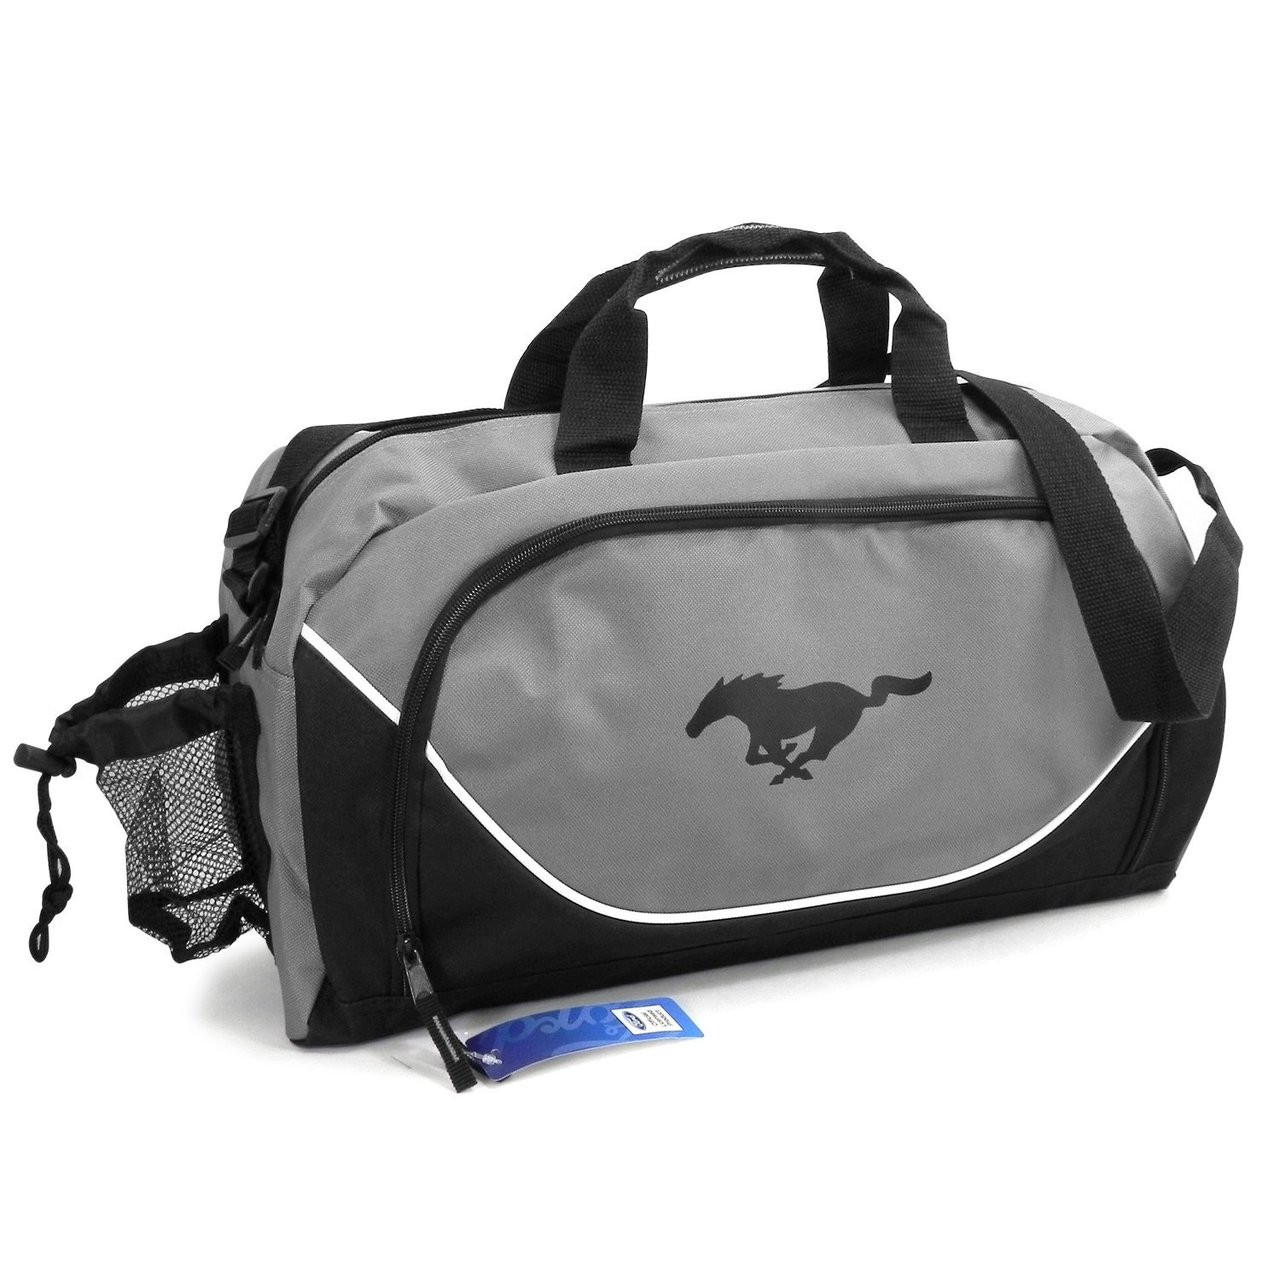 Ford Mustang Official Licensed Black Gray Duffel Bag